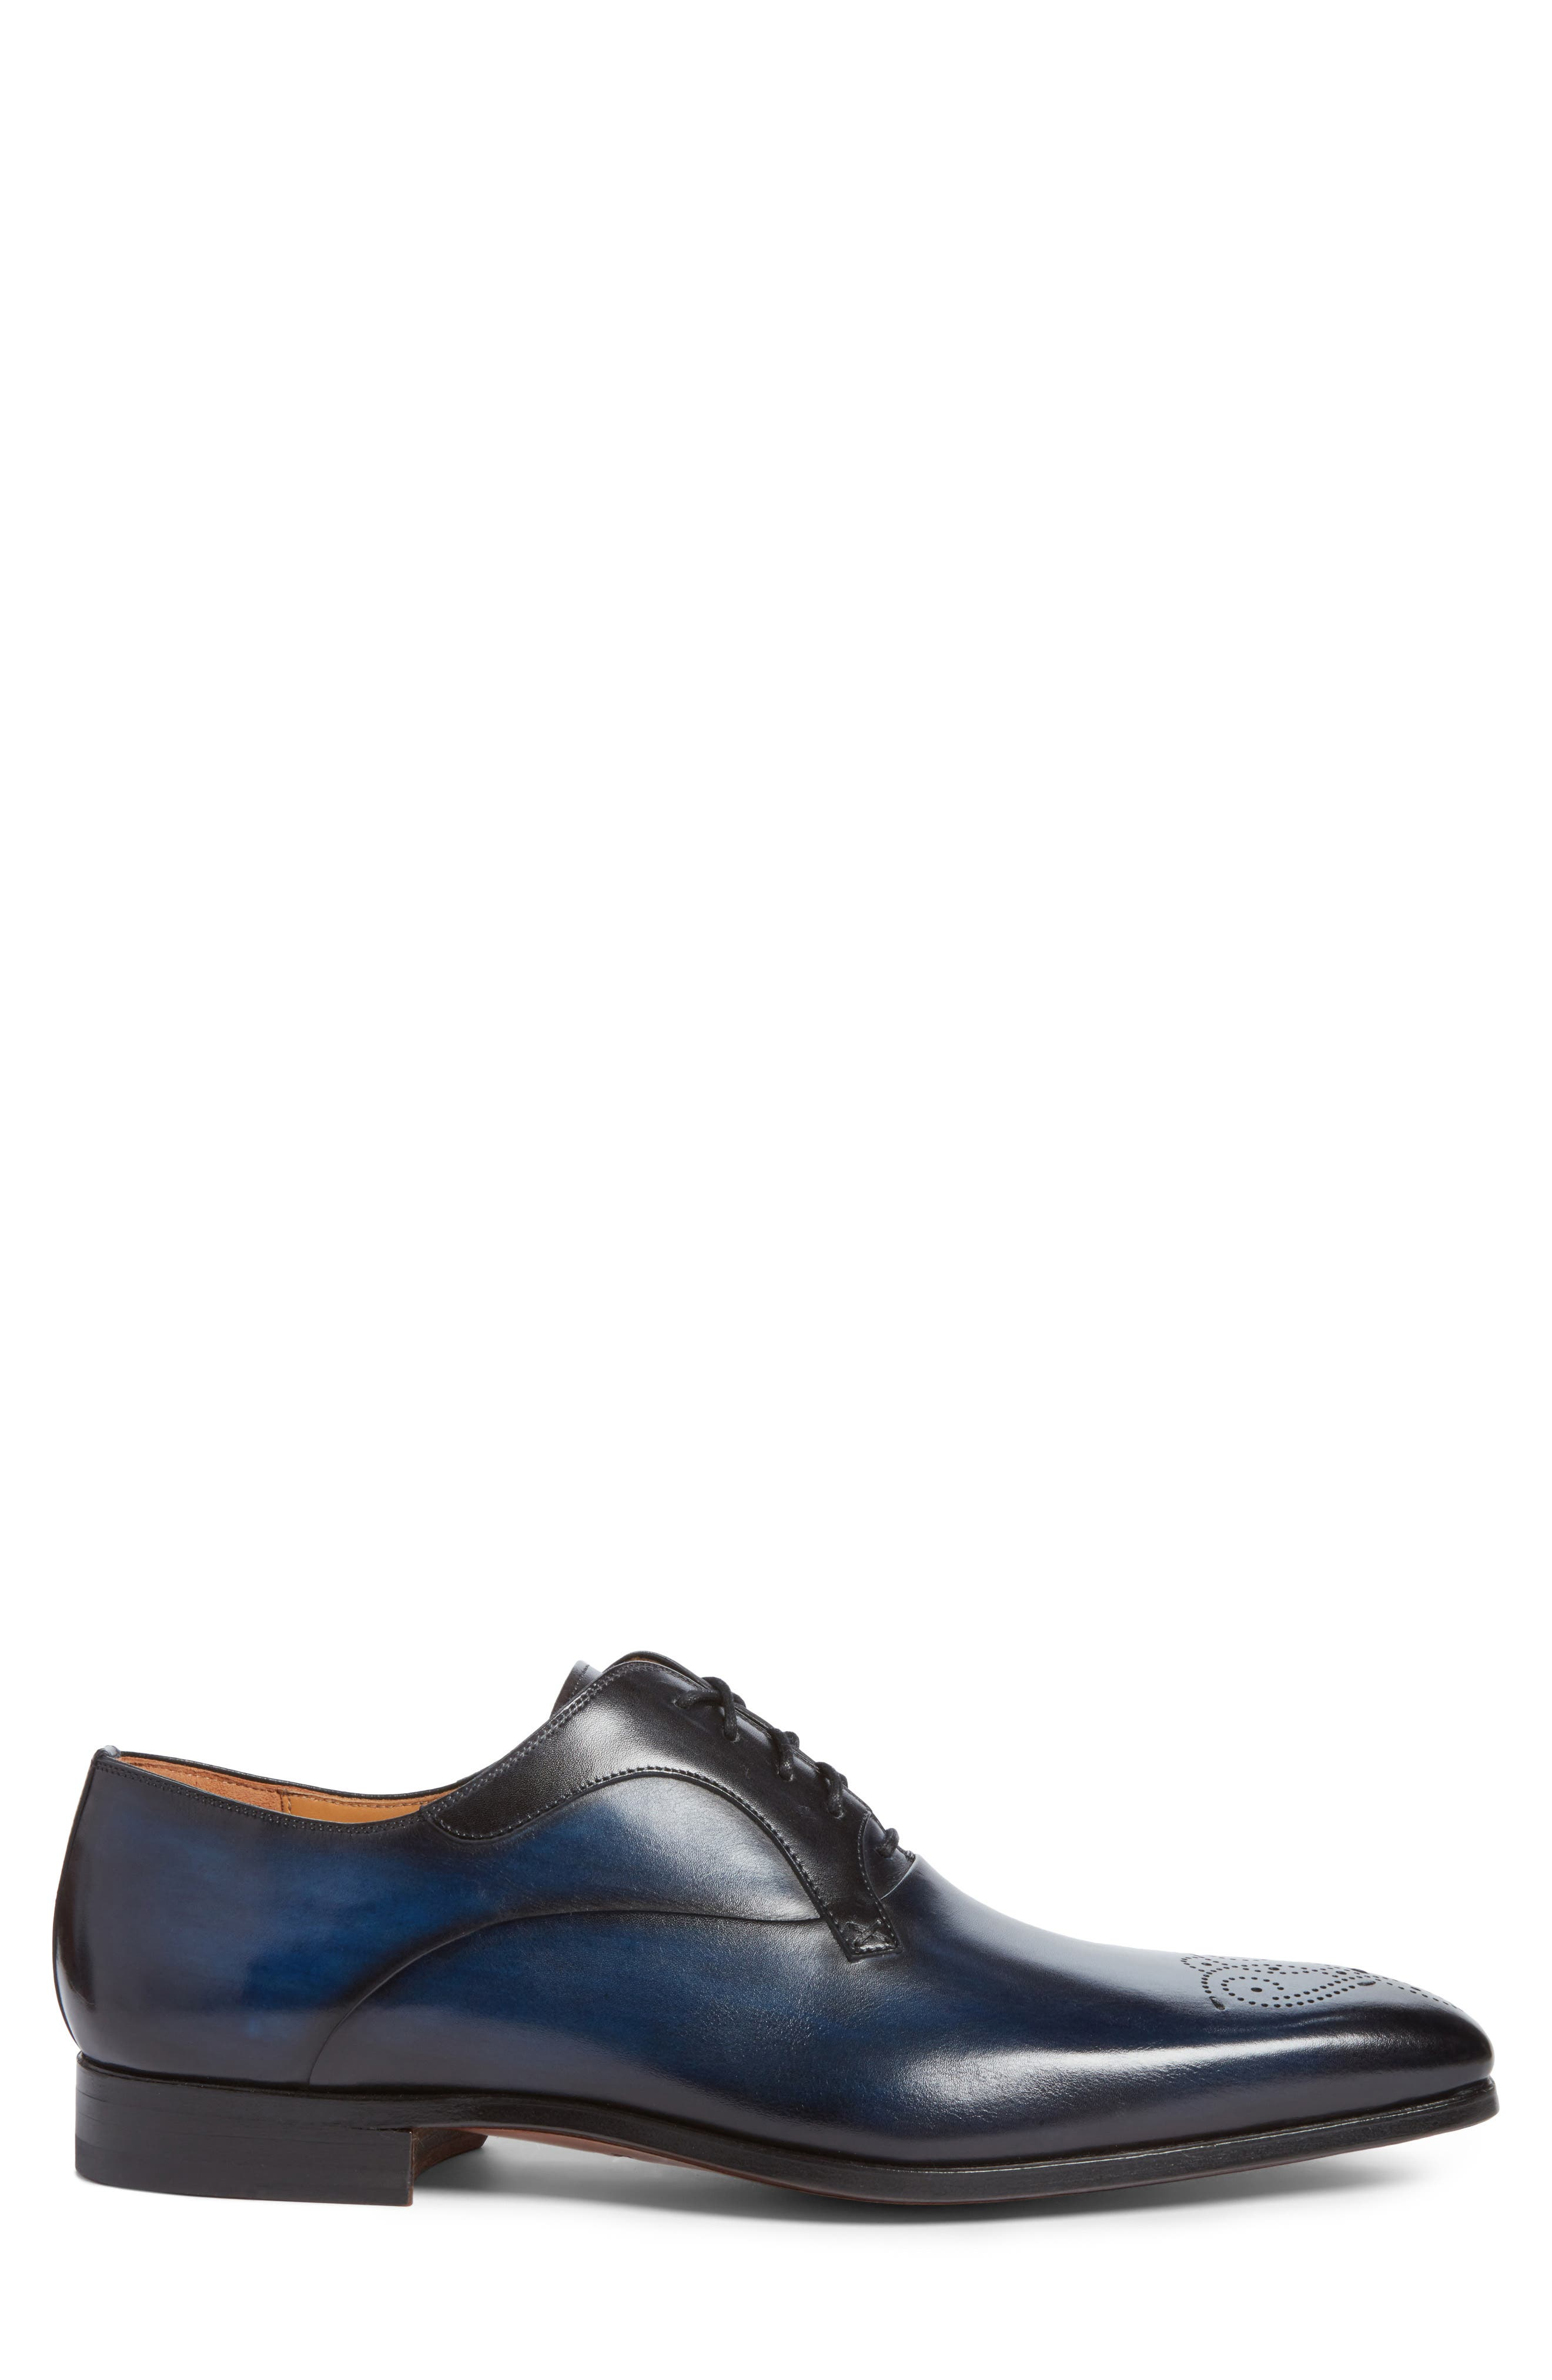 Salva Medallion Toe Oxford,                             Alternate thumbnail 3, color,                             Navy Leather